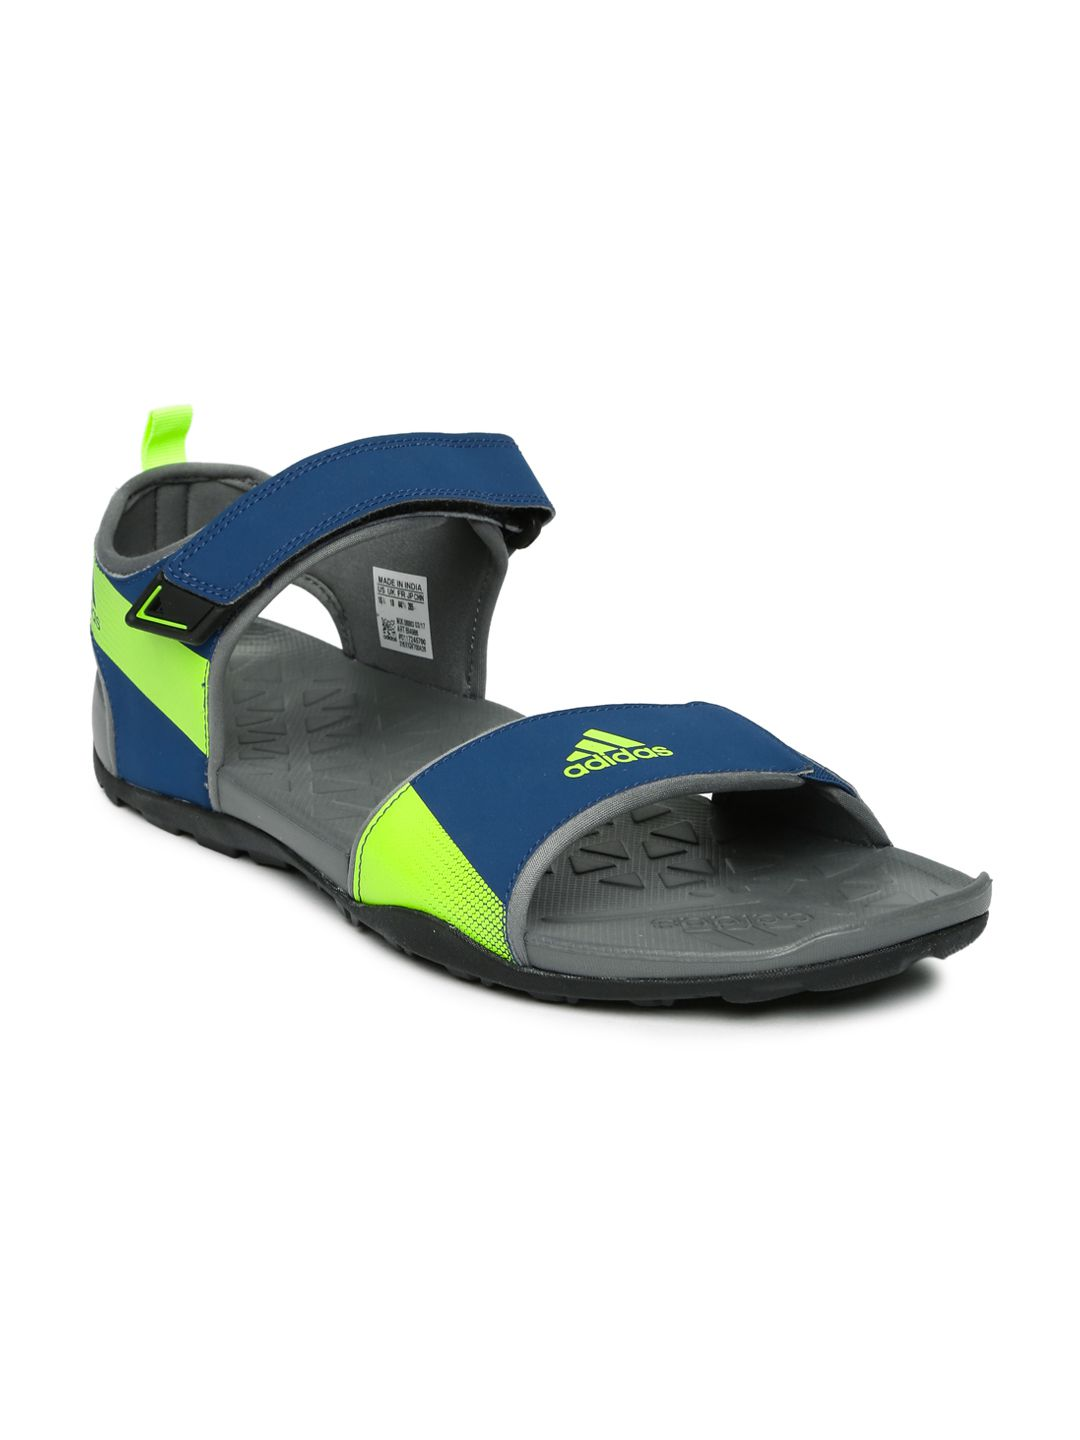 Adidas Men Cyran M Sports Navy Sandals Price in India- Buy Adidas Men Cyran  M Sports Navy Sandals Online at Snapdeal 410b03bf1d6d